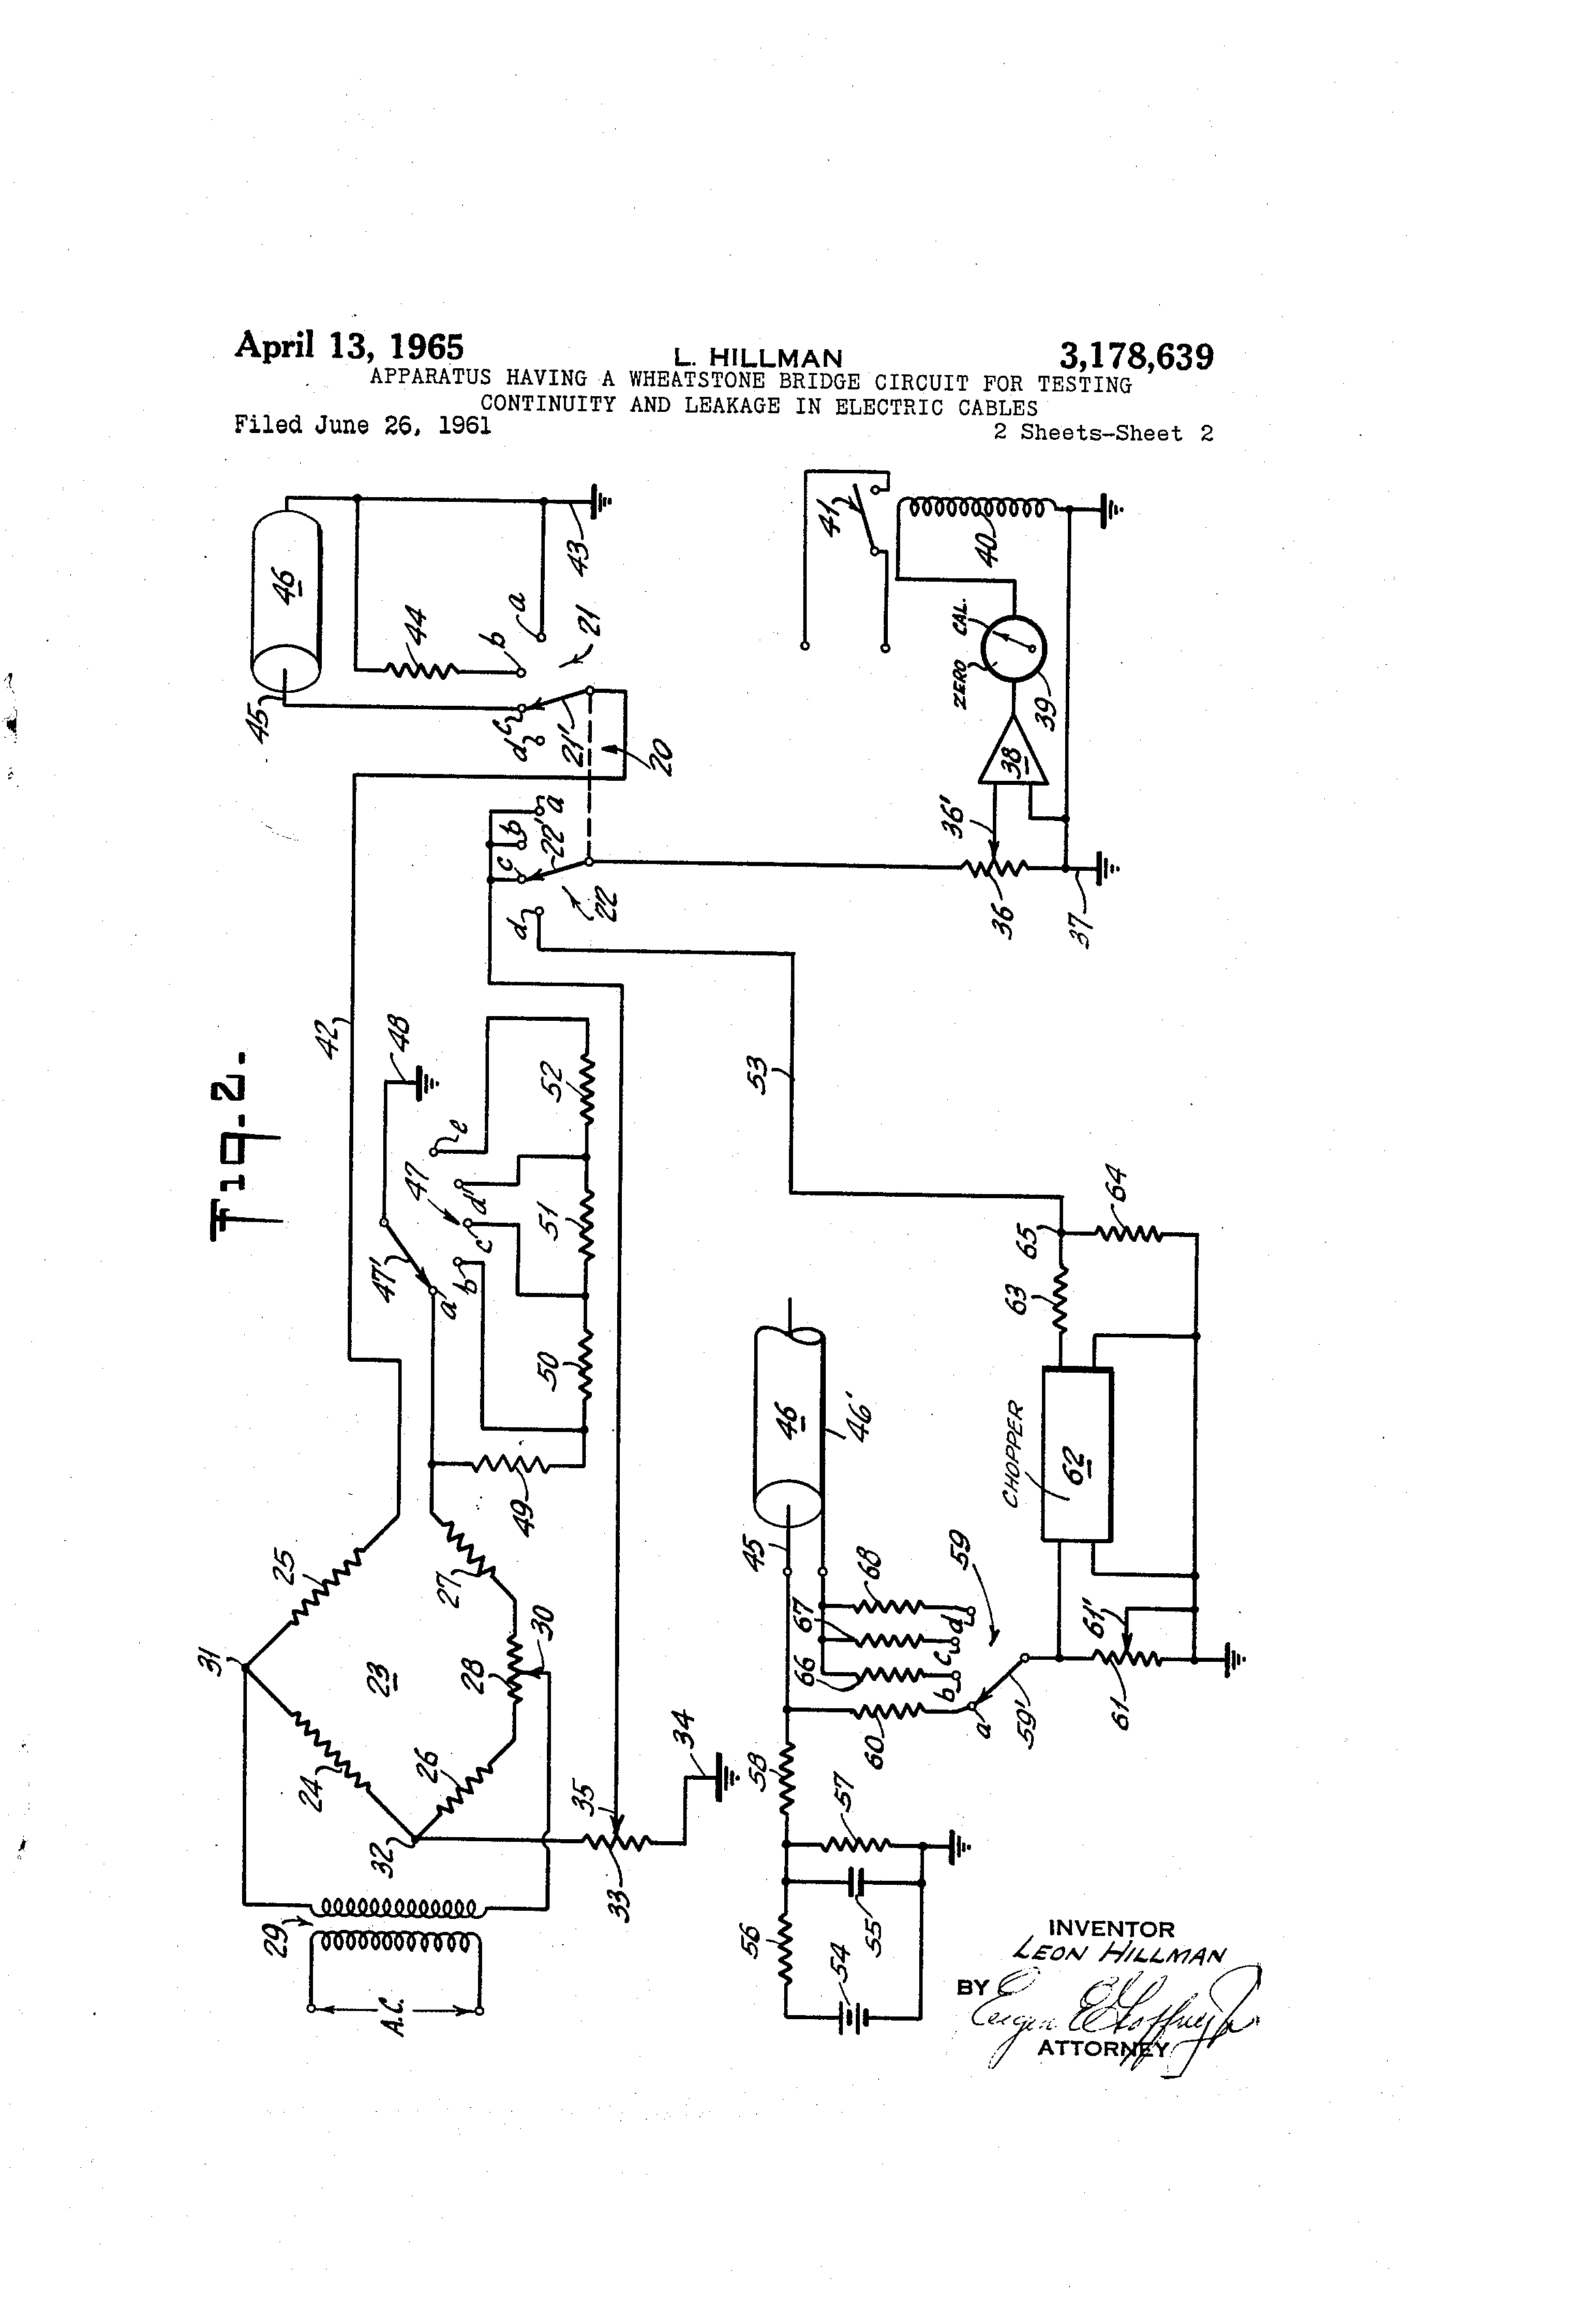 Patent Us3178639 Apparatus Having A Wheatstone Bridge Circuit For Of An Electrical Showing The Drawing